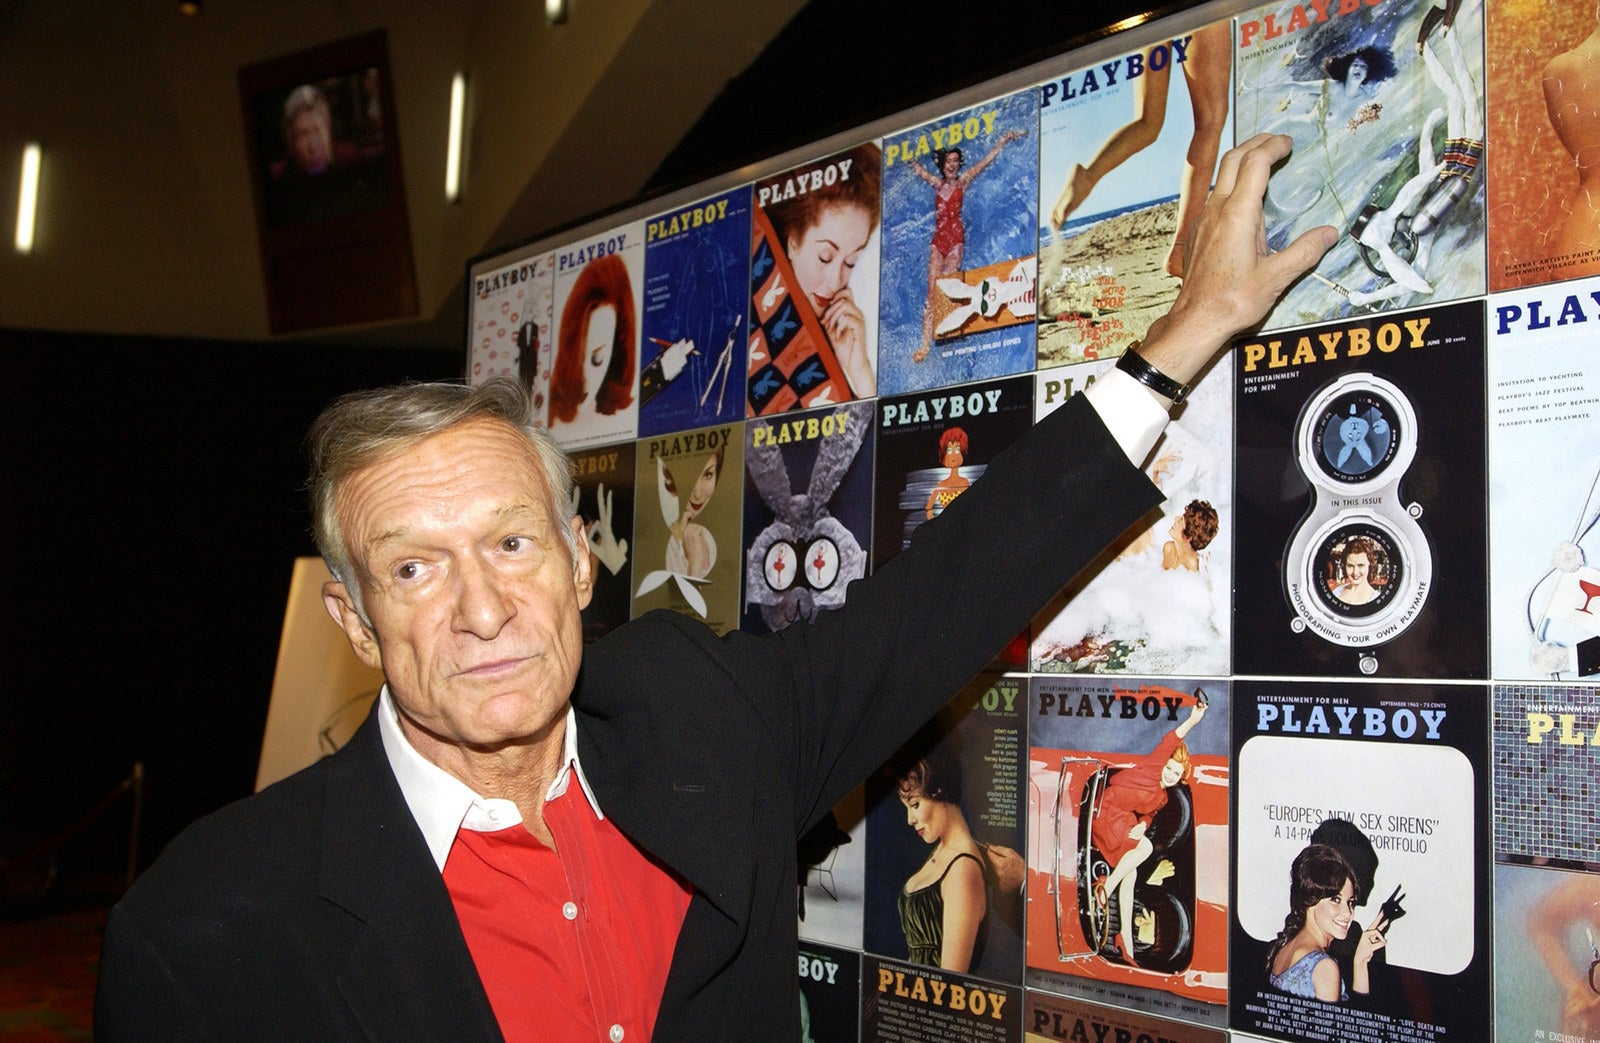 Hefner looks at past Playboy covers during a Las Vegas party celebrating Playboy's 50th anniversary in 2009.